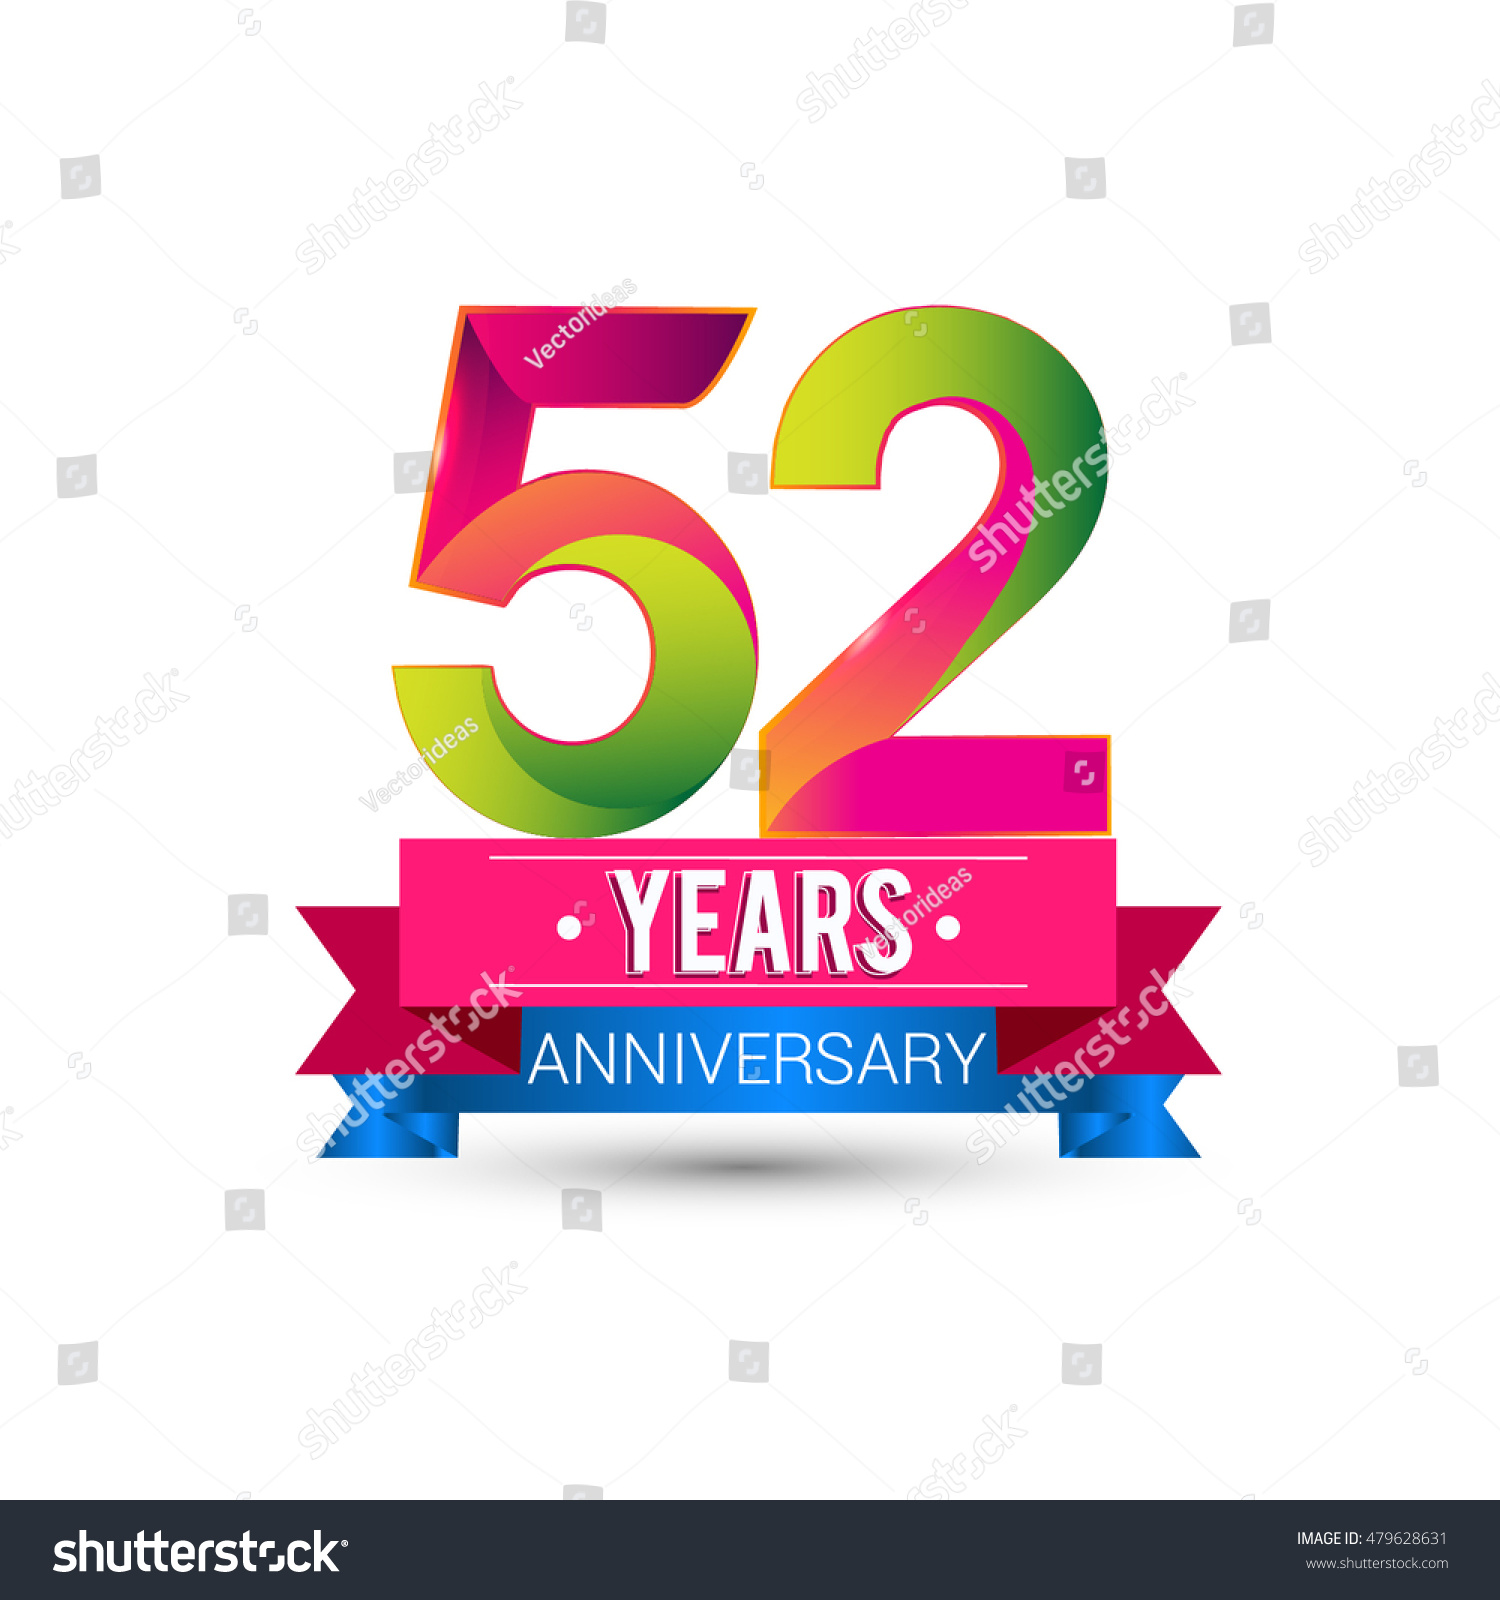 52 Years Anniversary Celebration Logo Red Stock Vector ...